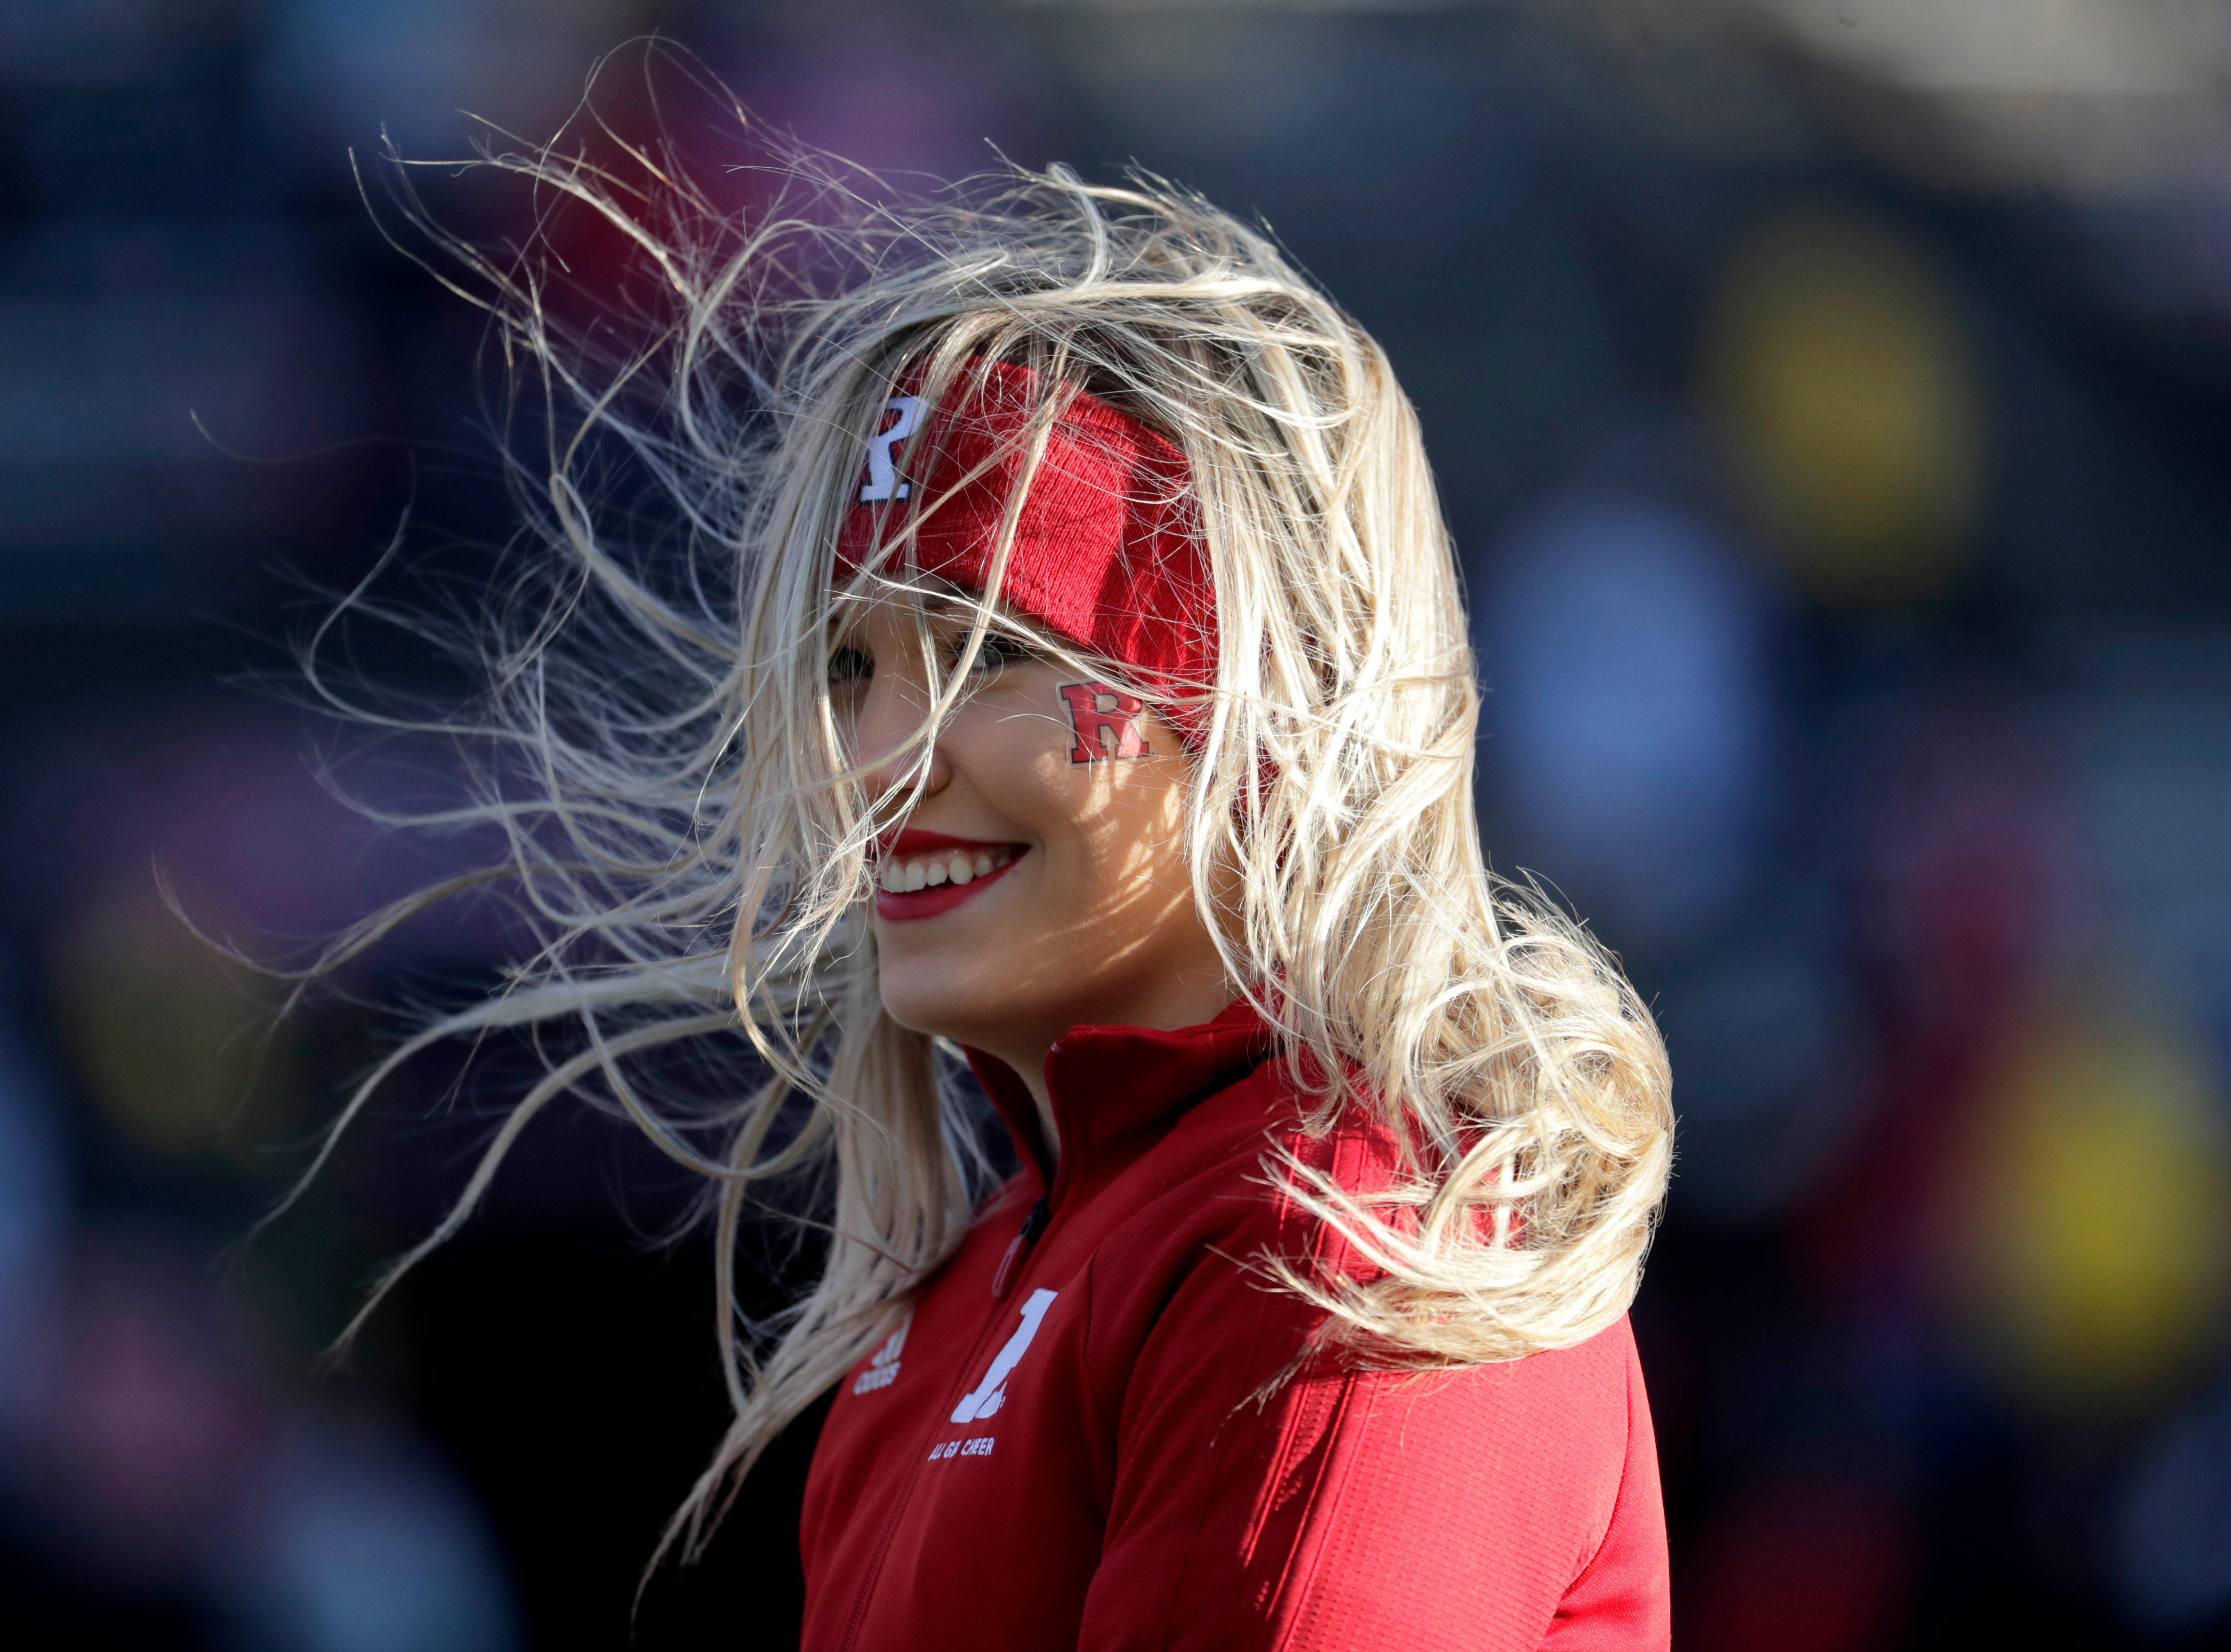 A Rutgers cheerleader stands on the field as gusty winds pick up her hair.